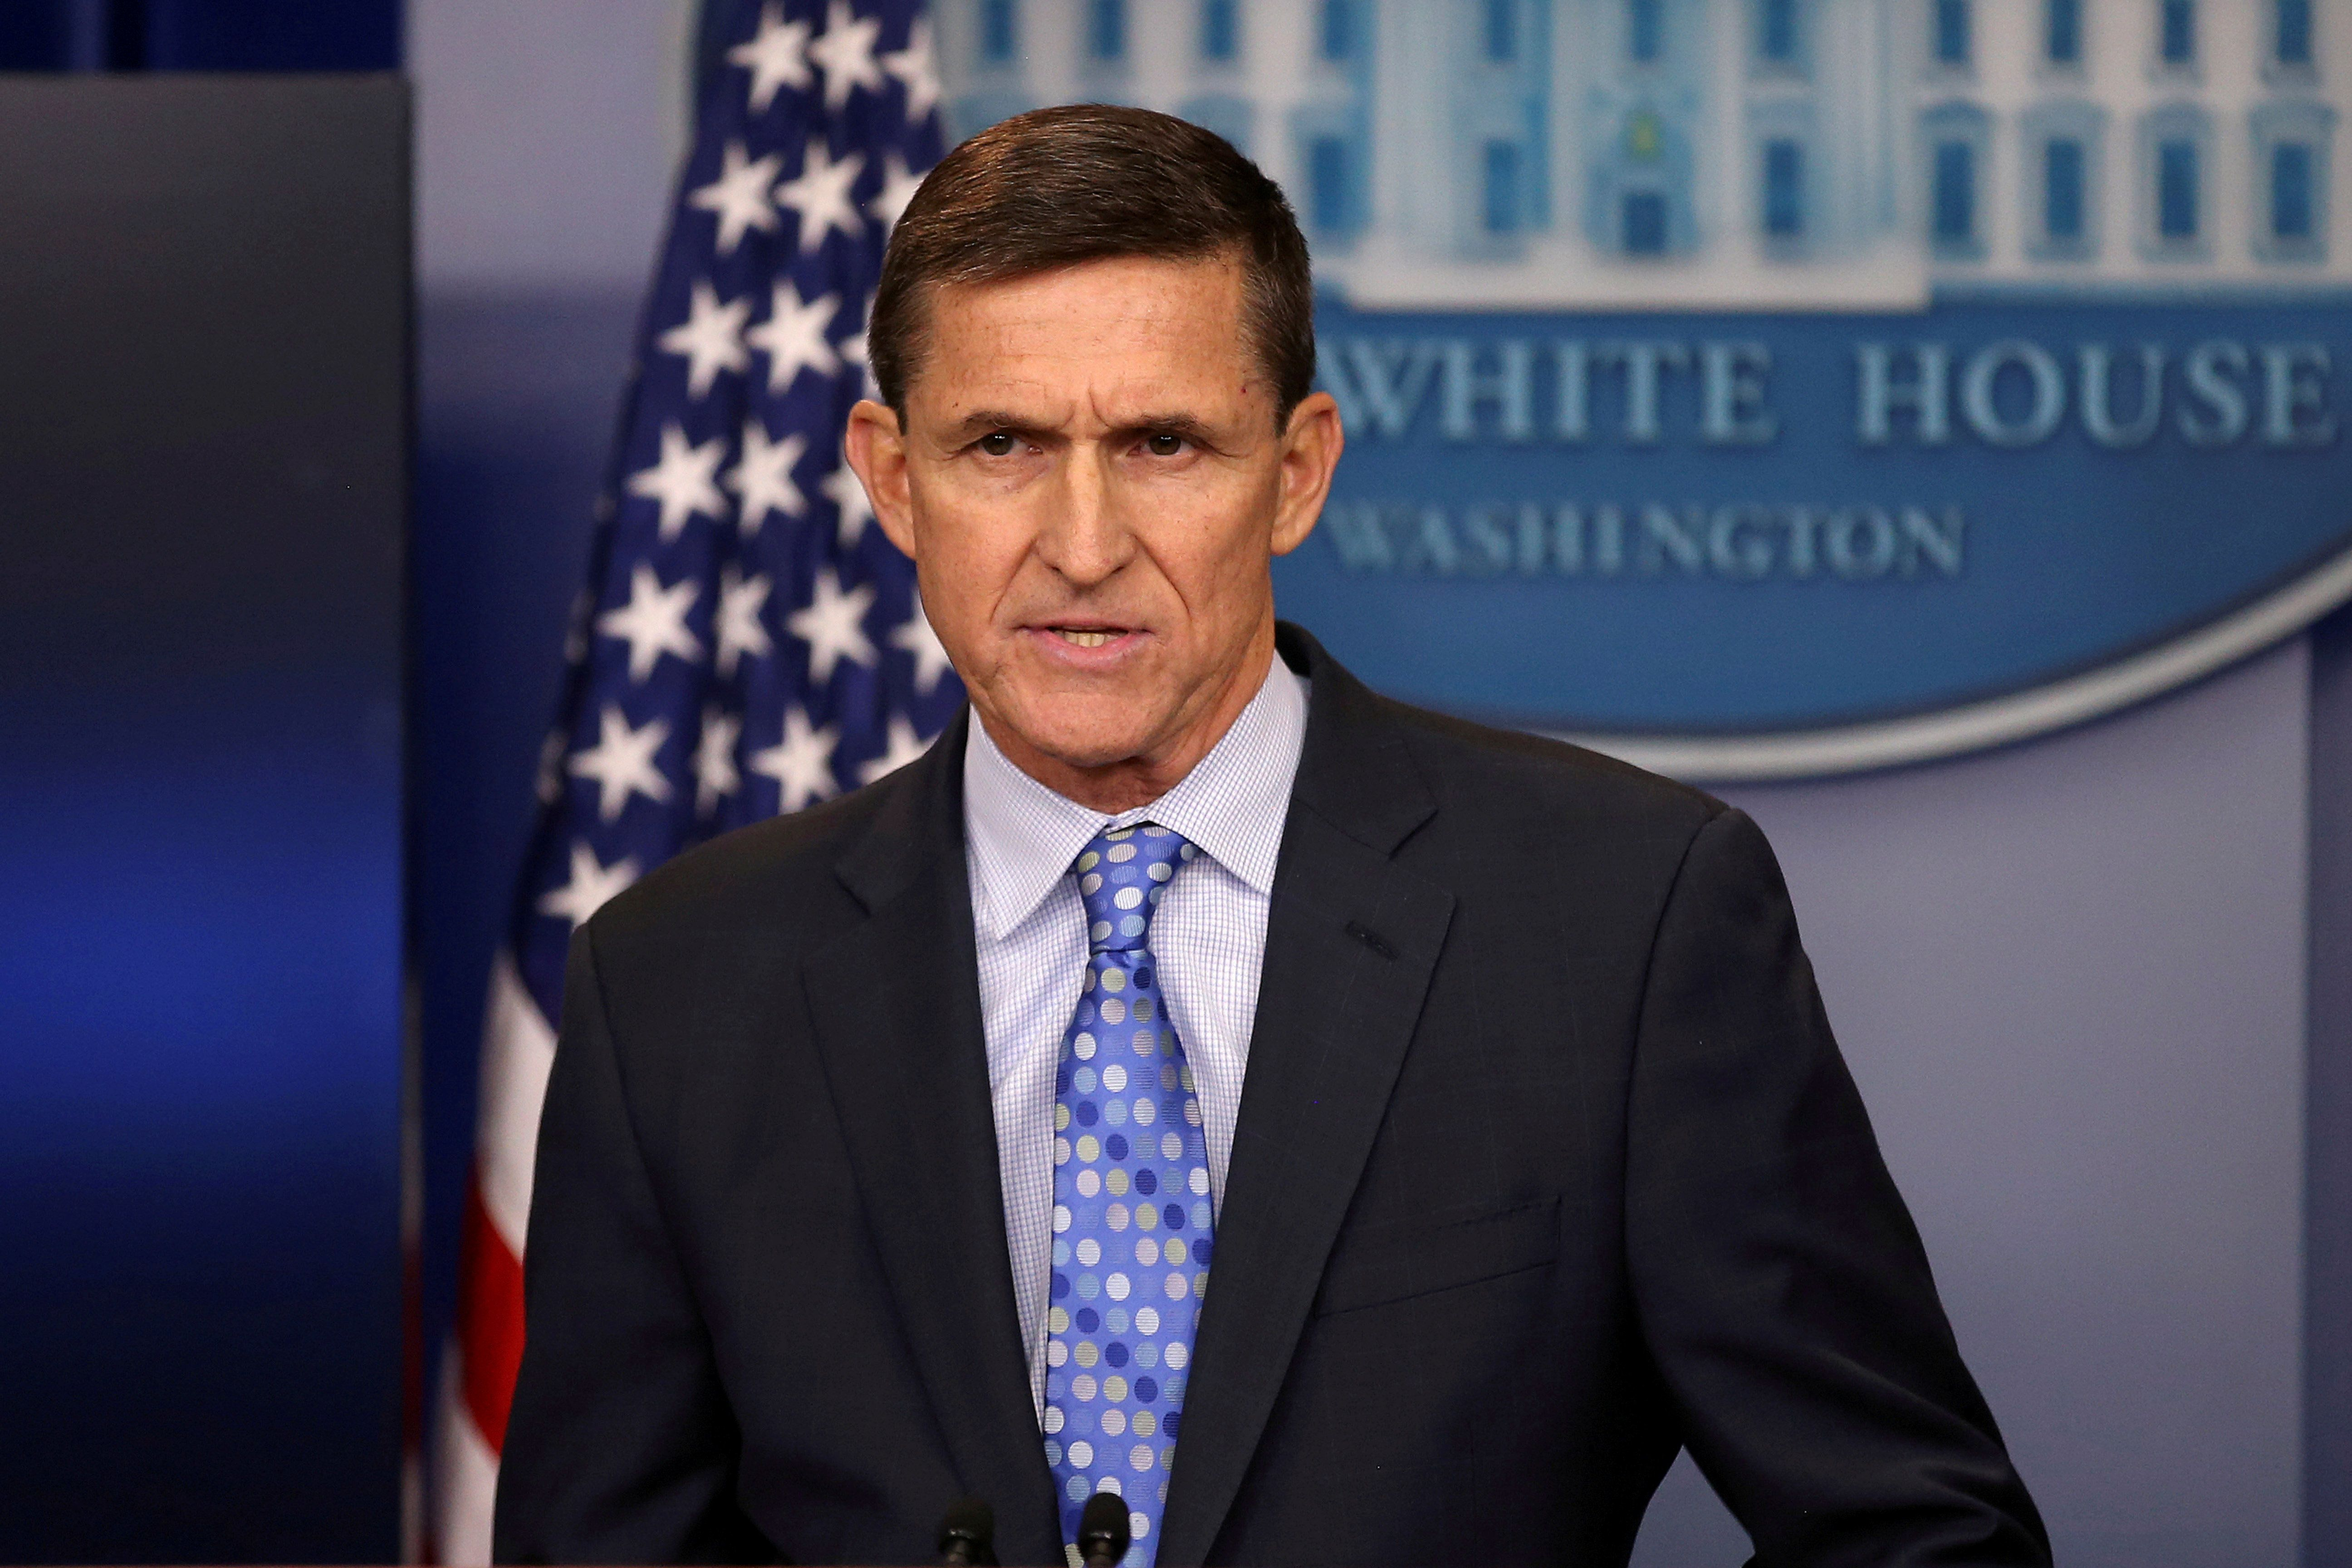 Then national security adviser General Michael Flynn delivers a statement daily briefing at the White House in Washington, U.S., February 1, 2017. Picture taken February 1, 2017. REUTERS/Carlos Barria